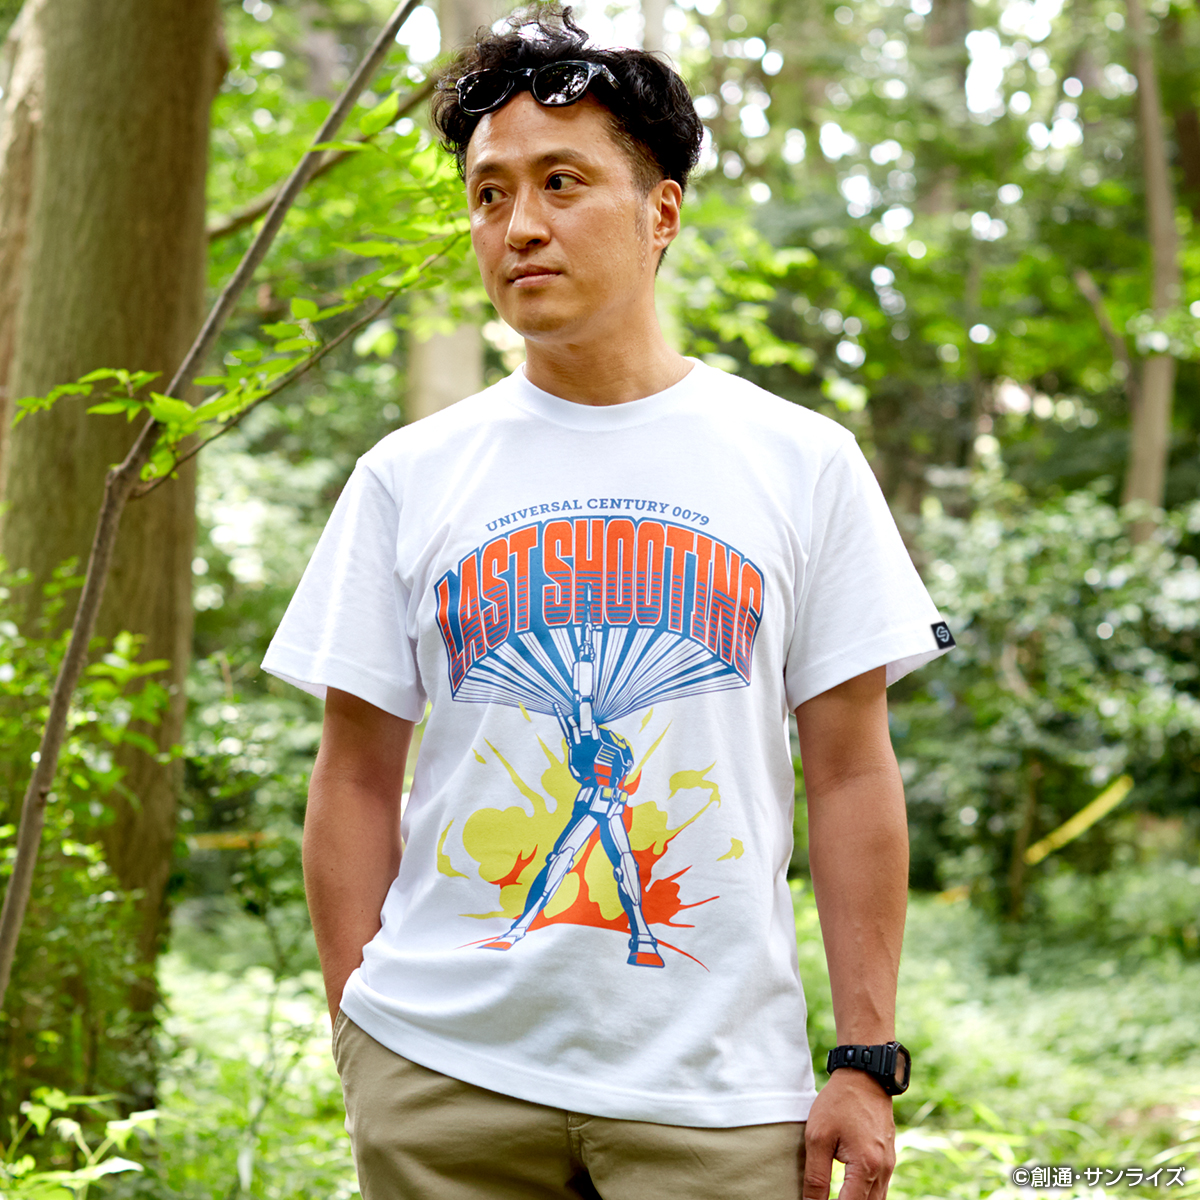 STRICT-G 「MOBILE SUIT GUNDAM」LAST SHOOTING T-SHIRT